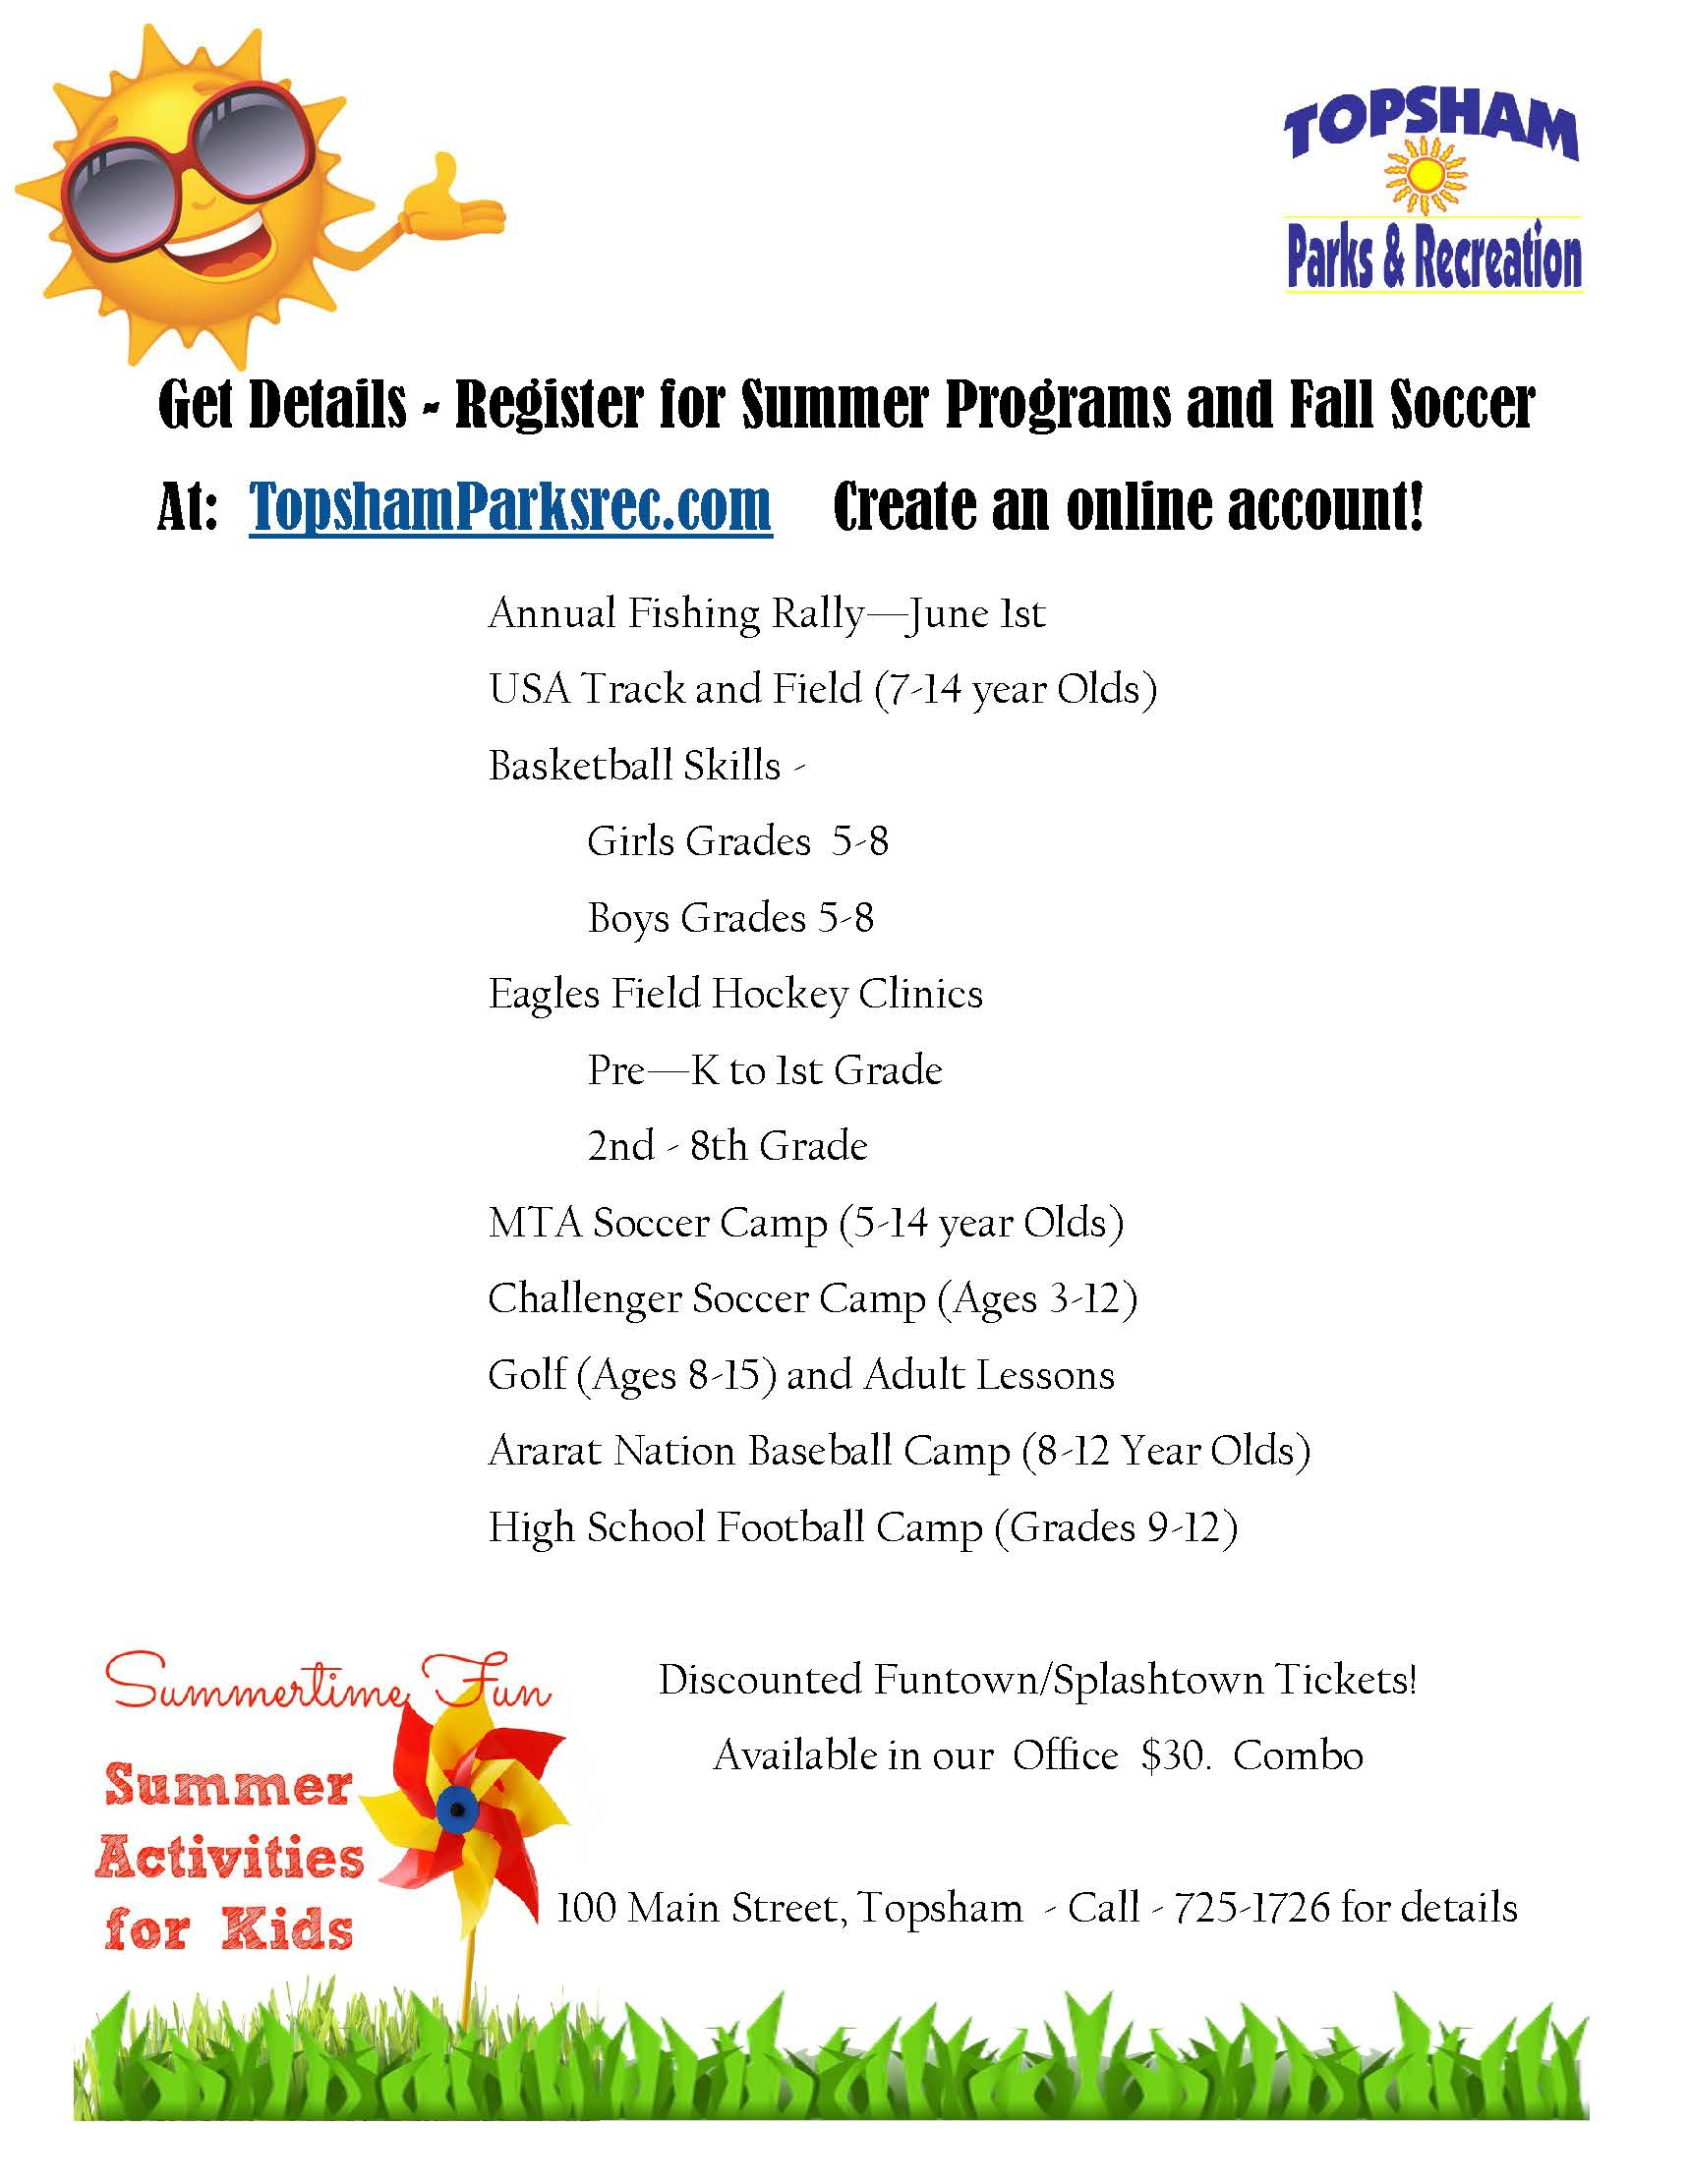 Topsham Recreation - Summer Activities & Fall Soccer